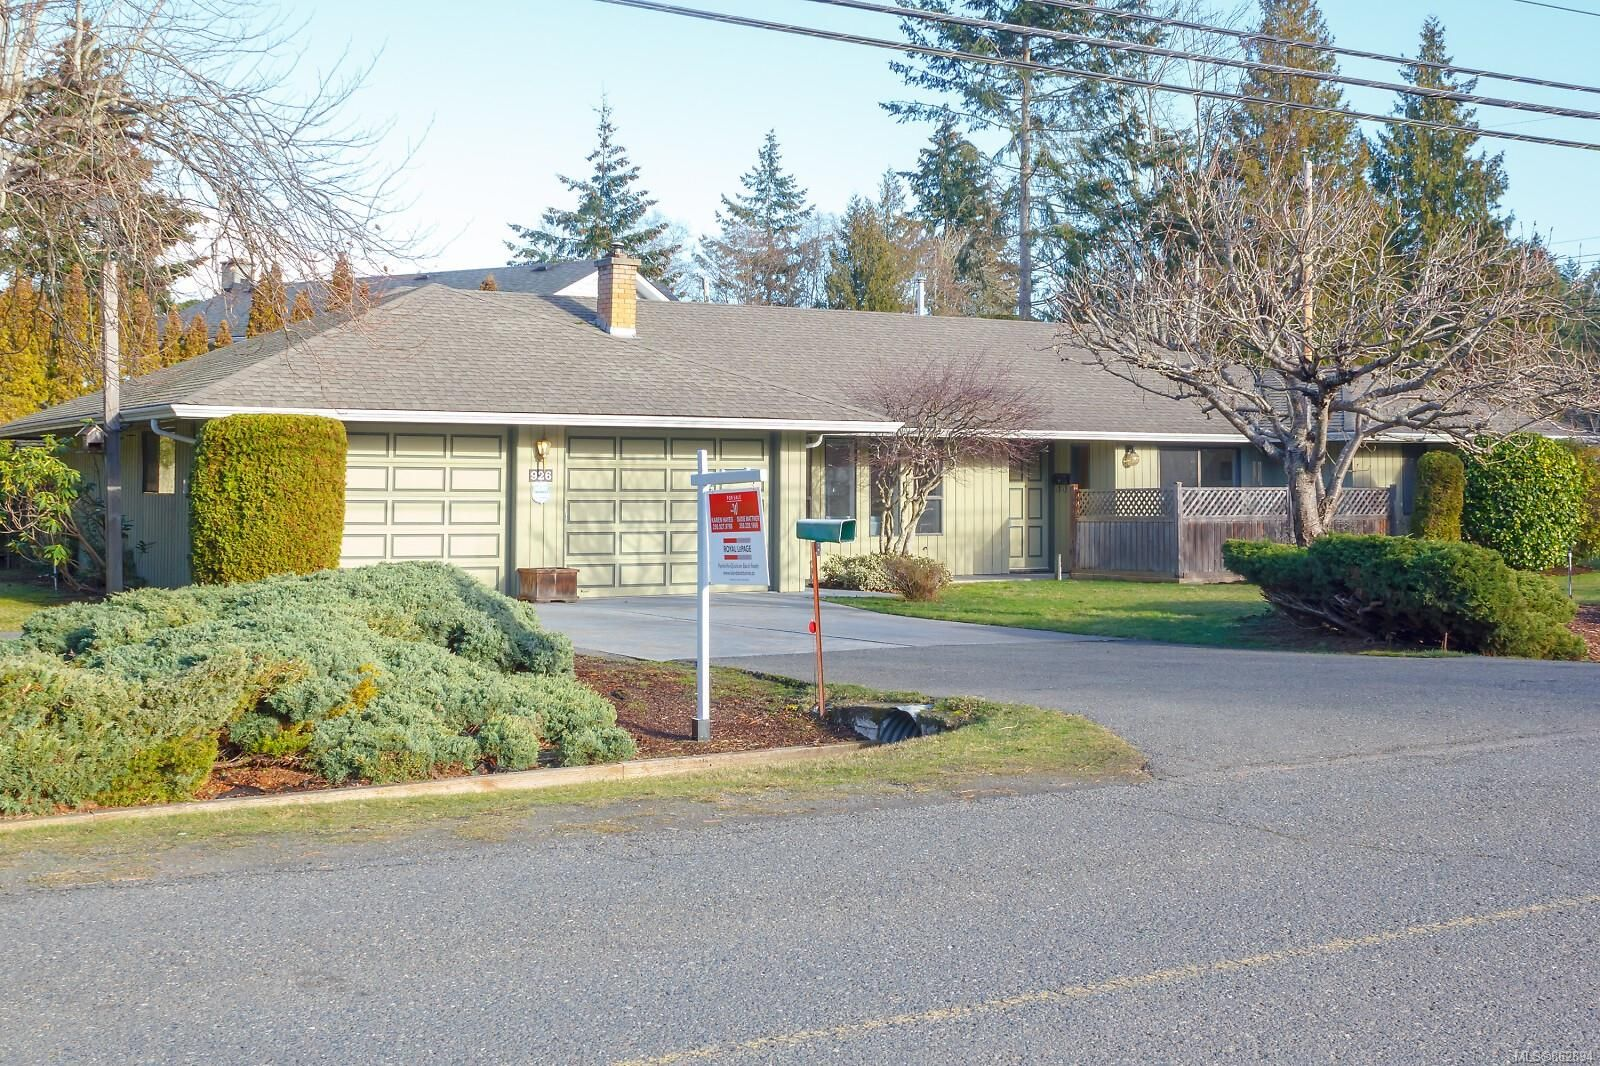 Main Photo: 926 Mulholland Dr in : PQ French Creek House for sale (Parksville/Qualicum)  : MLS®# 862894